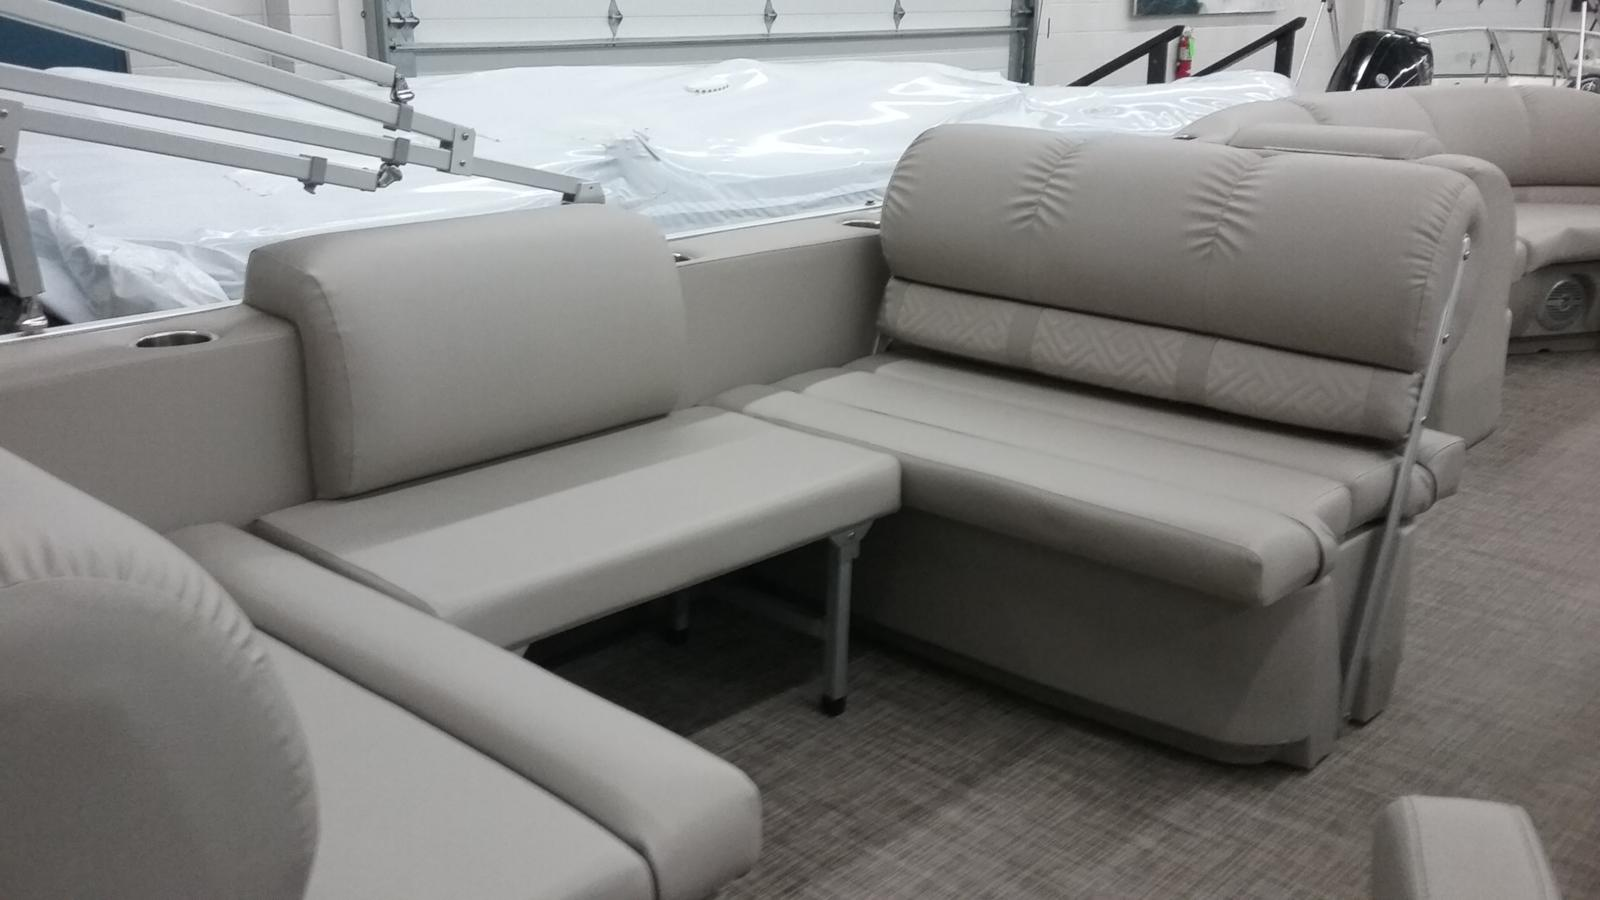 2019 Cypress Cay boat for sale, model of the boat is 233 Sea Breeze SLP & Image # 3 of 5